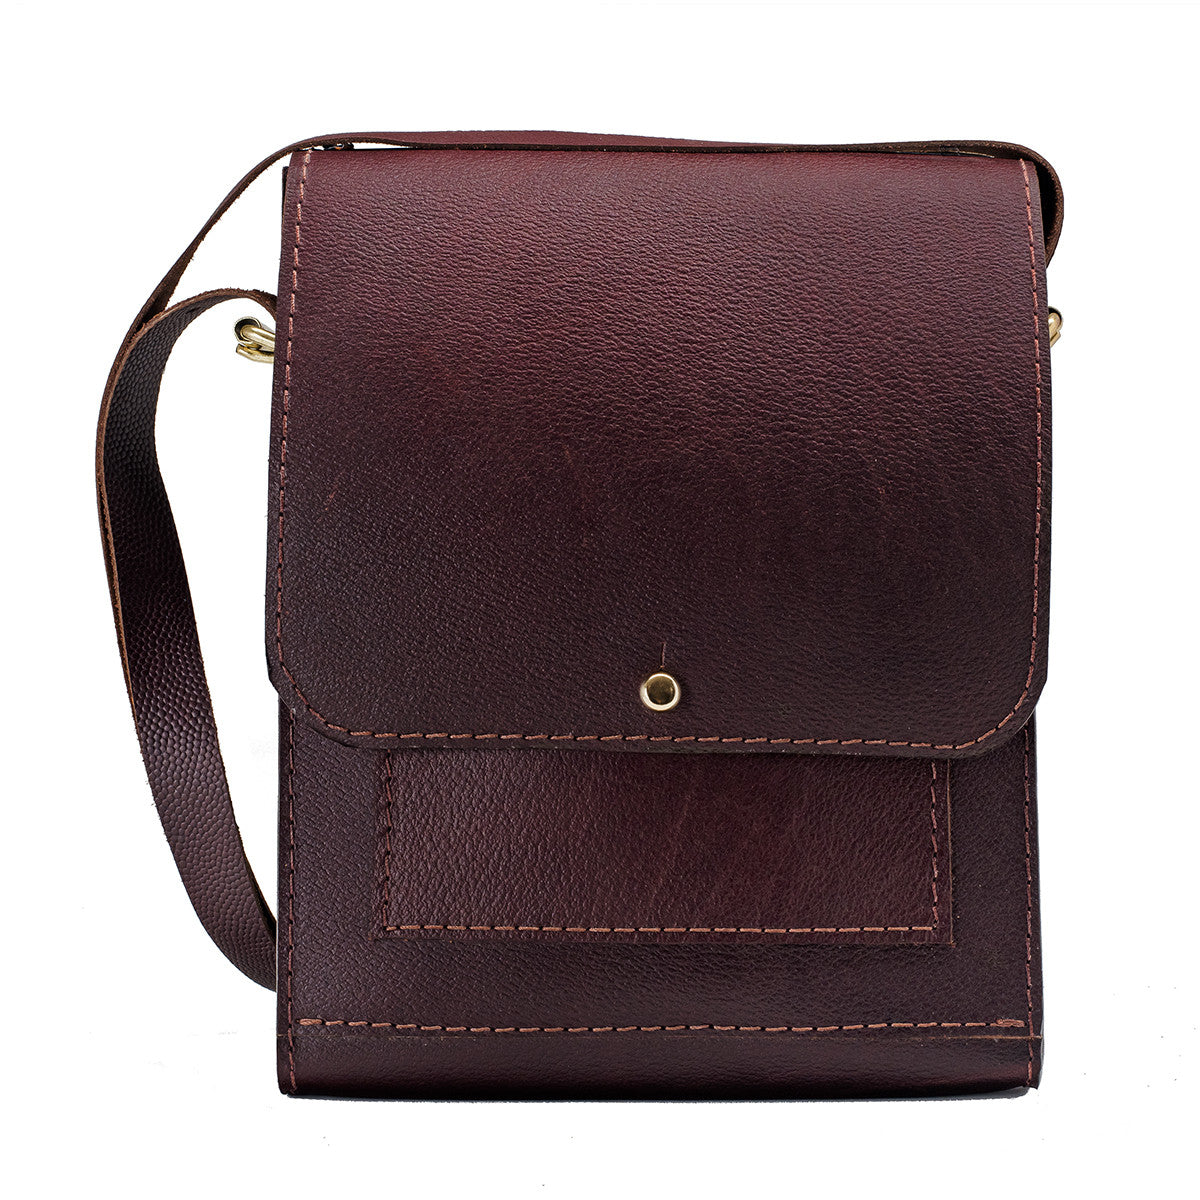 Leather Vertical Messenger Bag, Burgundy Brown